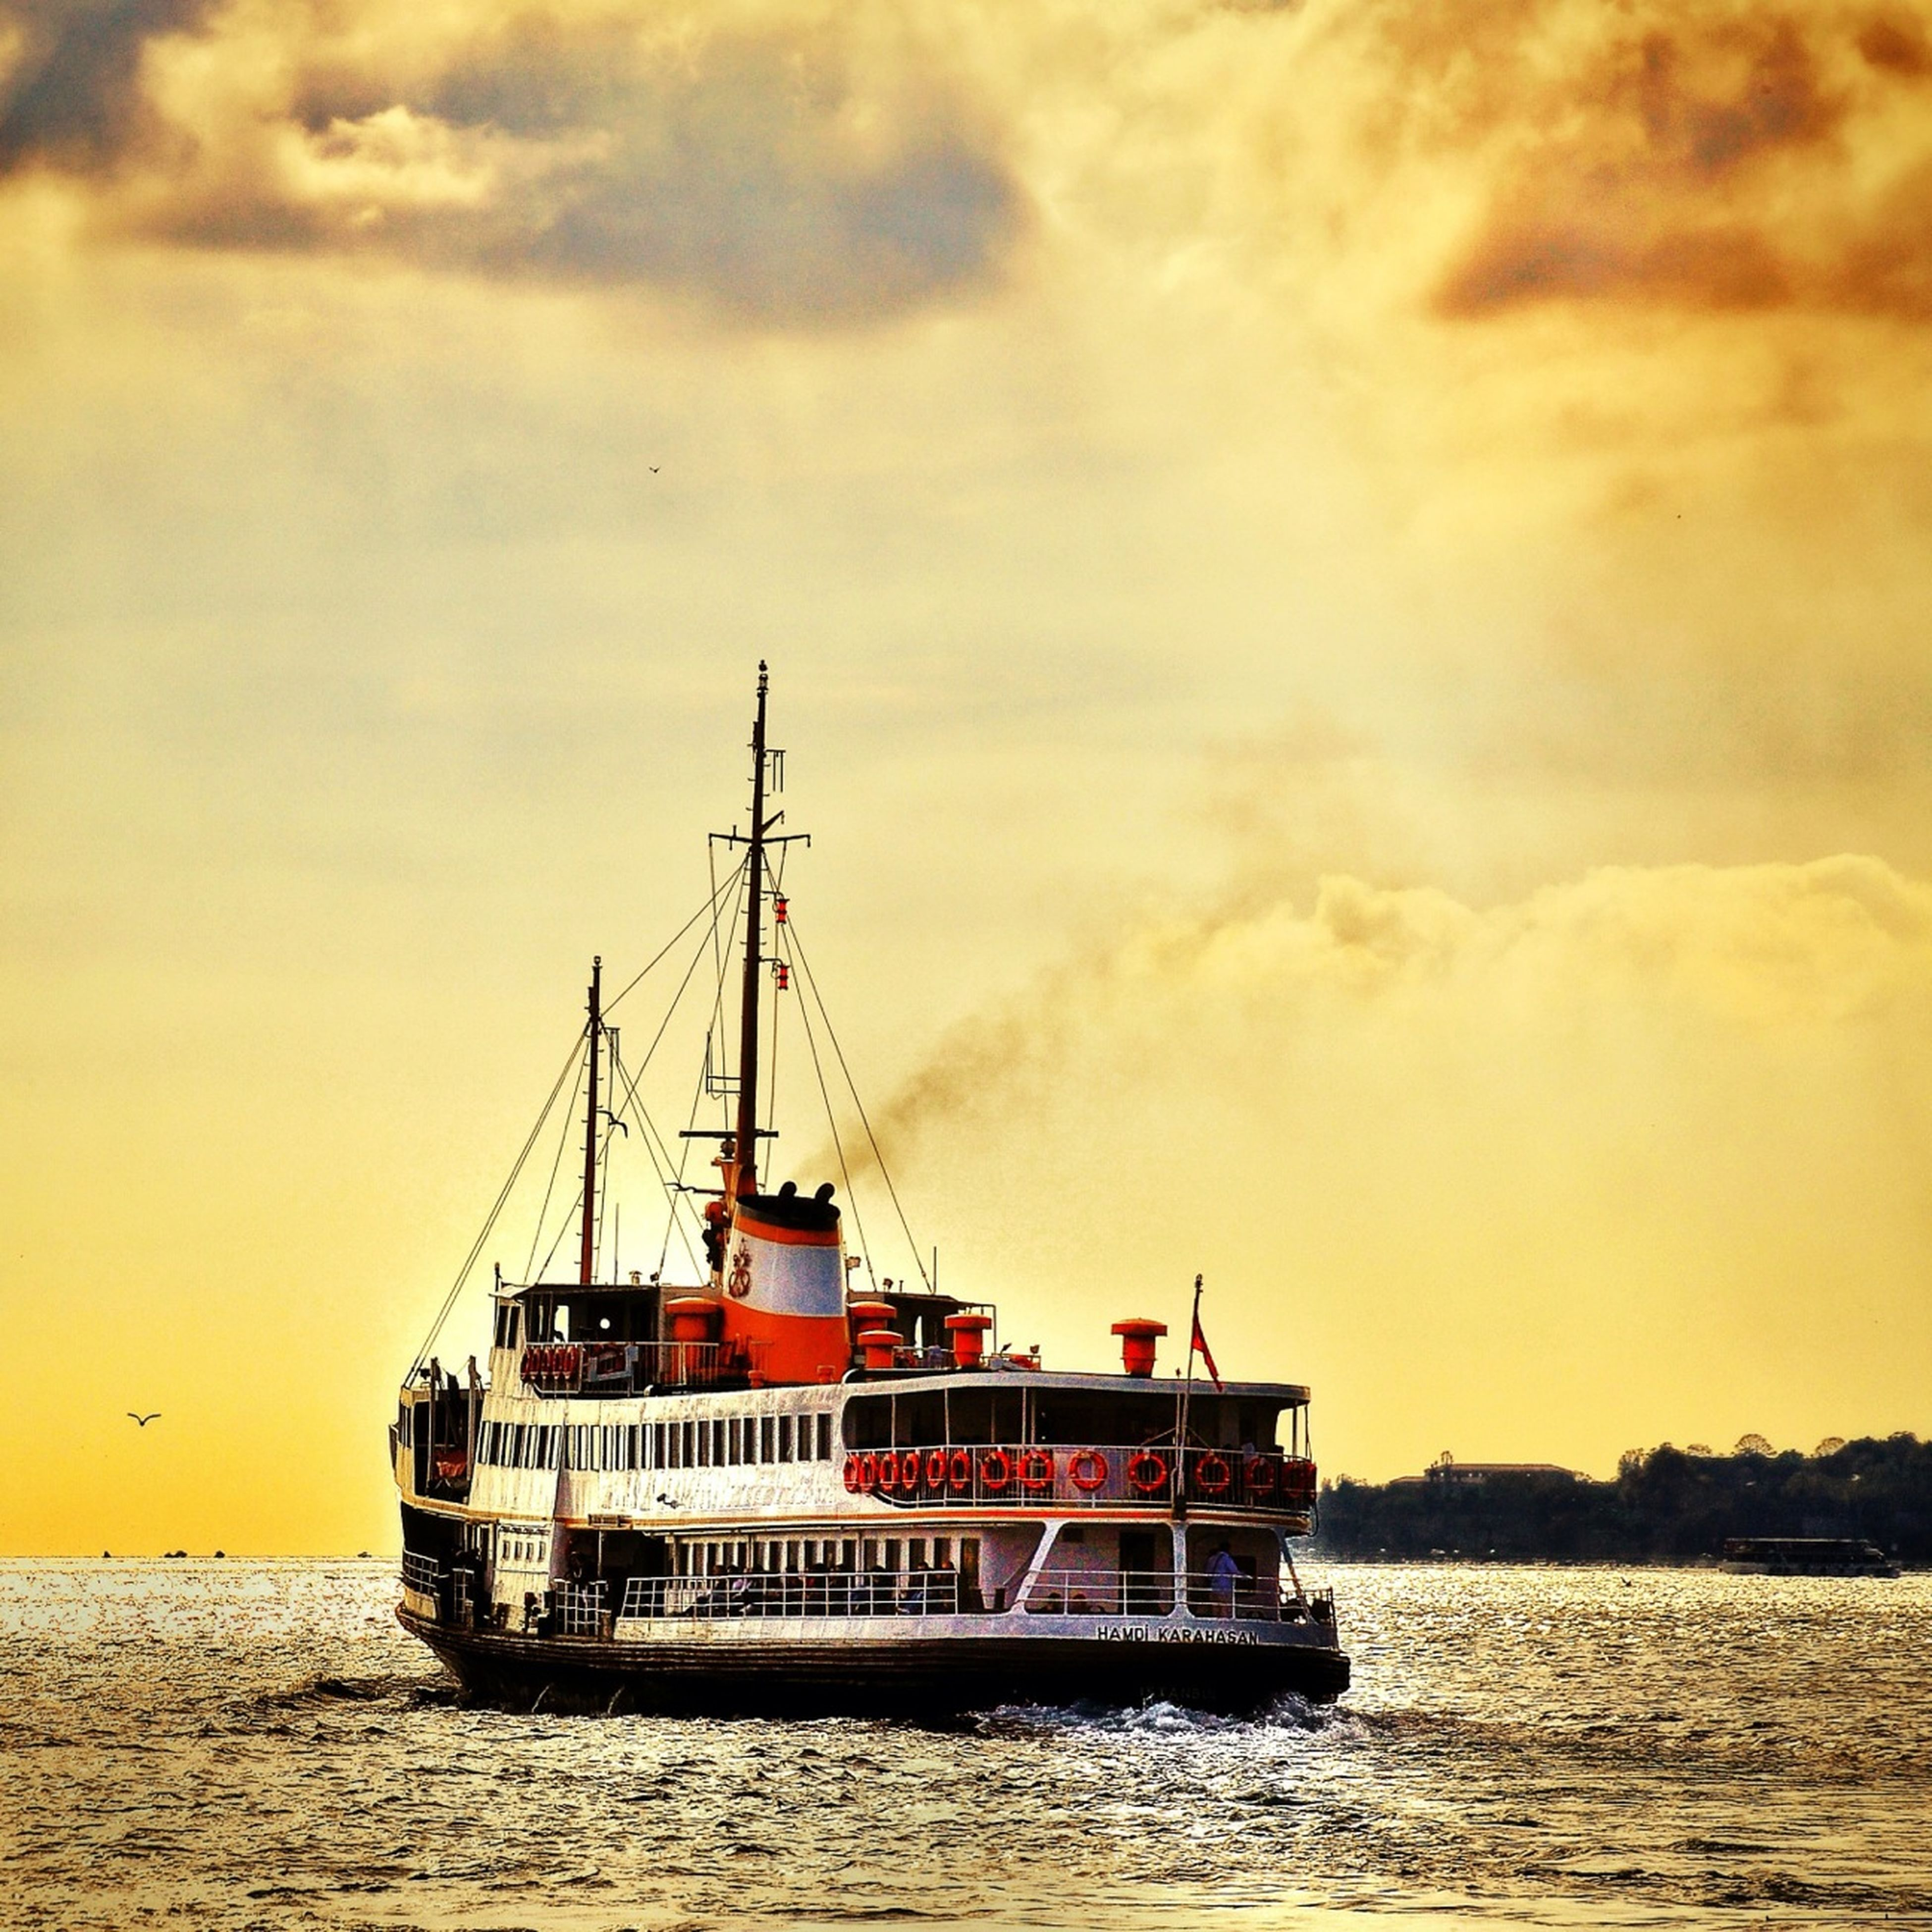 nautical vessel, transportation, mode of transport, boat, water, sea, waterfront, sailing, sunset, moored, mast, sky, sailboat, travel, ship, tranquility, tranquil scene, nature, scenics, beauty in nature